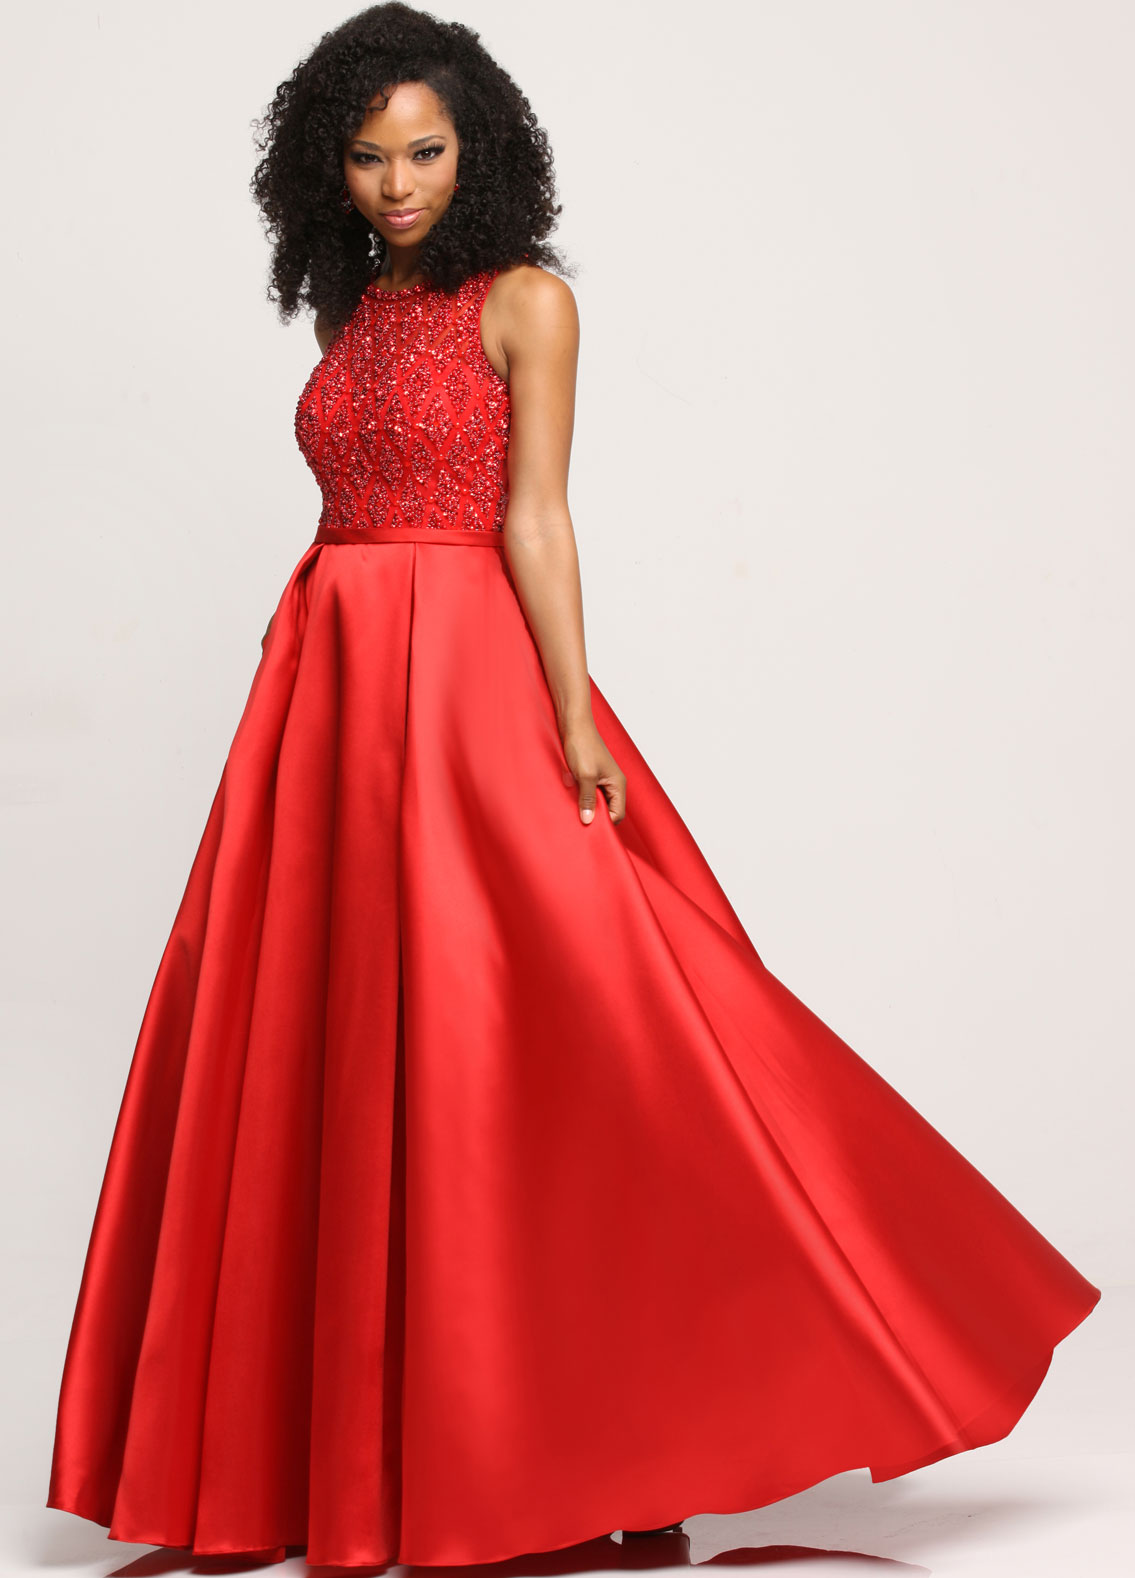 Winning Pageant Gowns for 2018 in Red